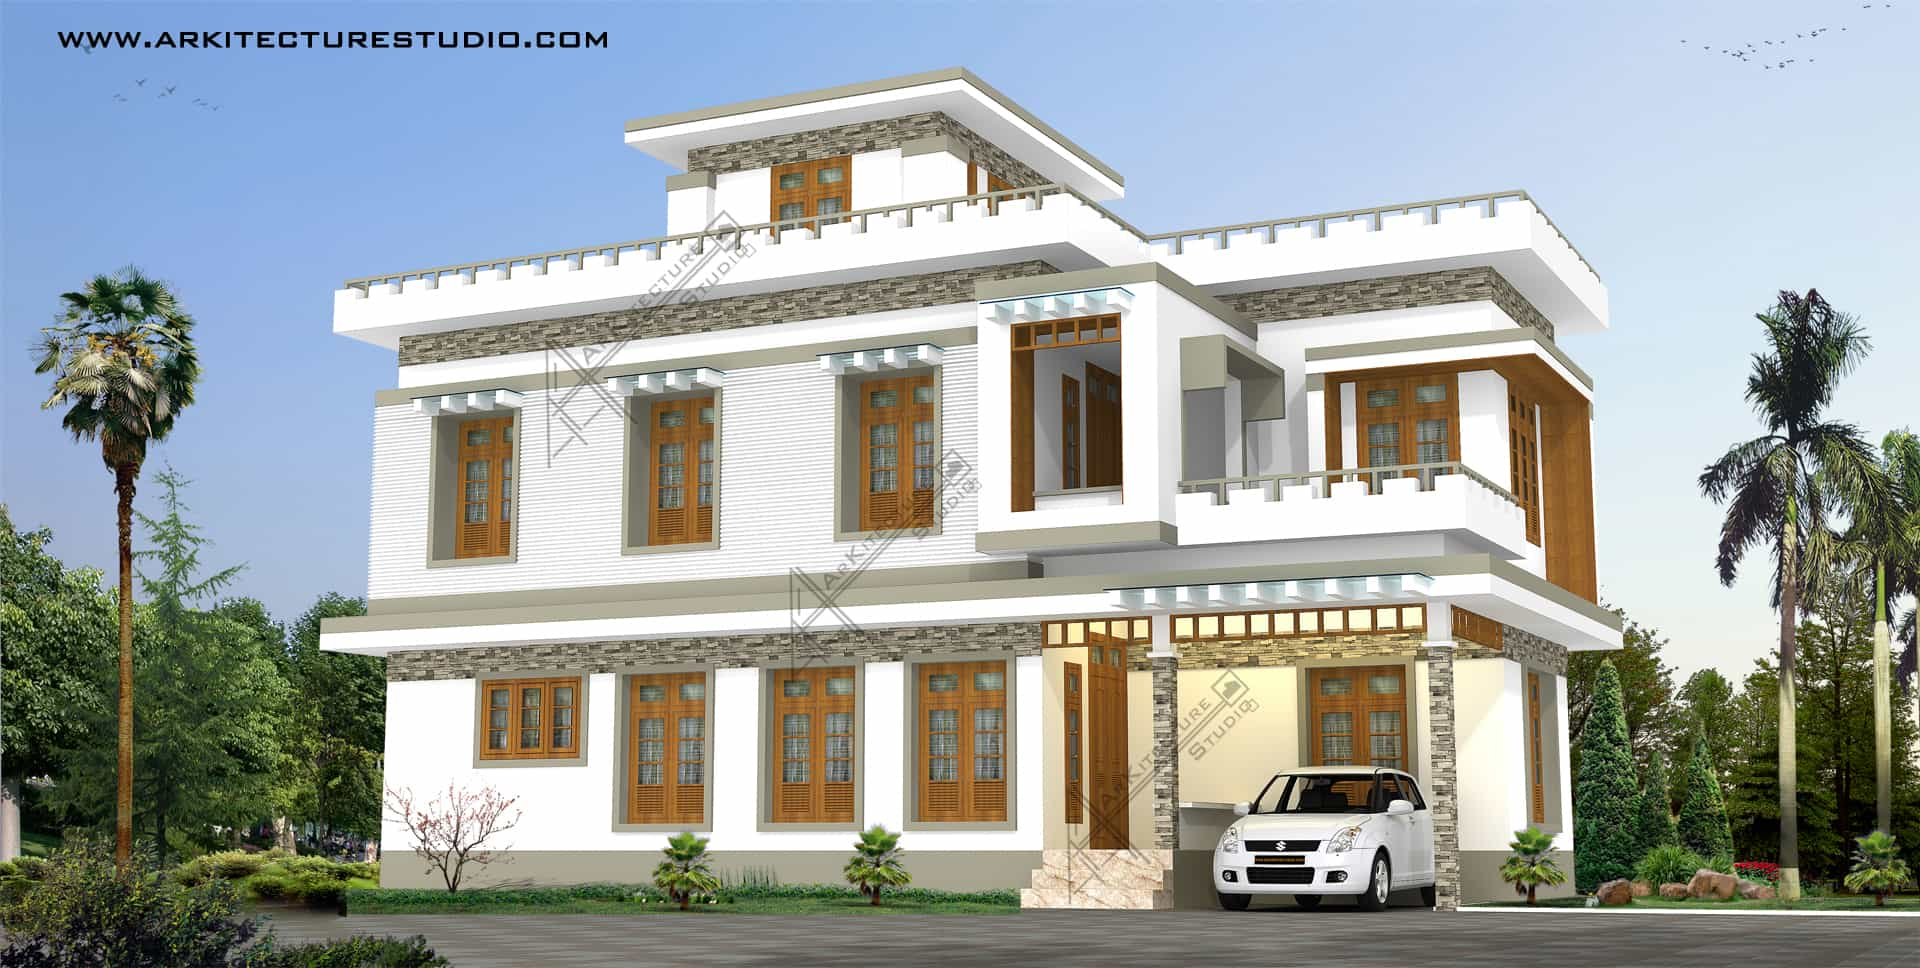 Kerala home designs 2015 5 designs photos khp for Kerala house plans 2014